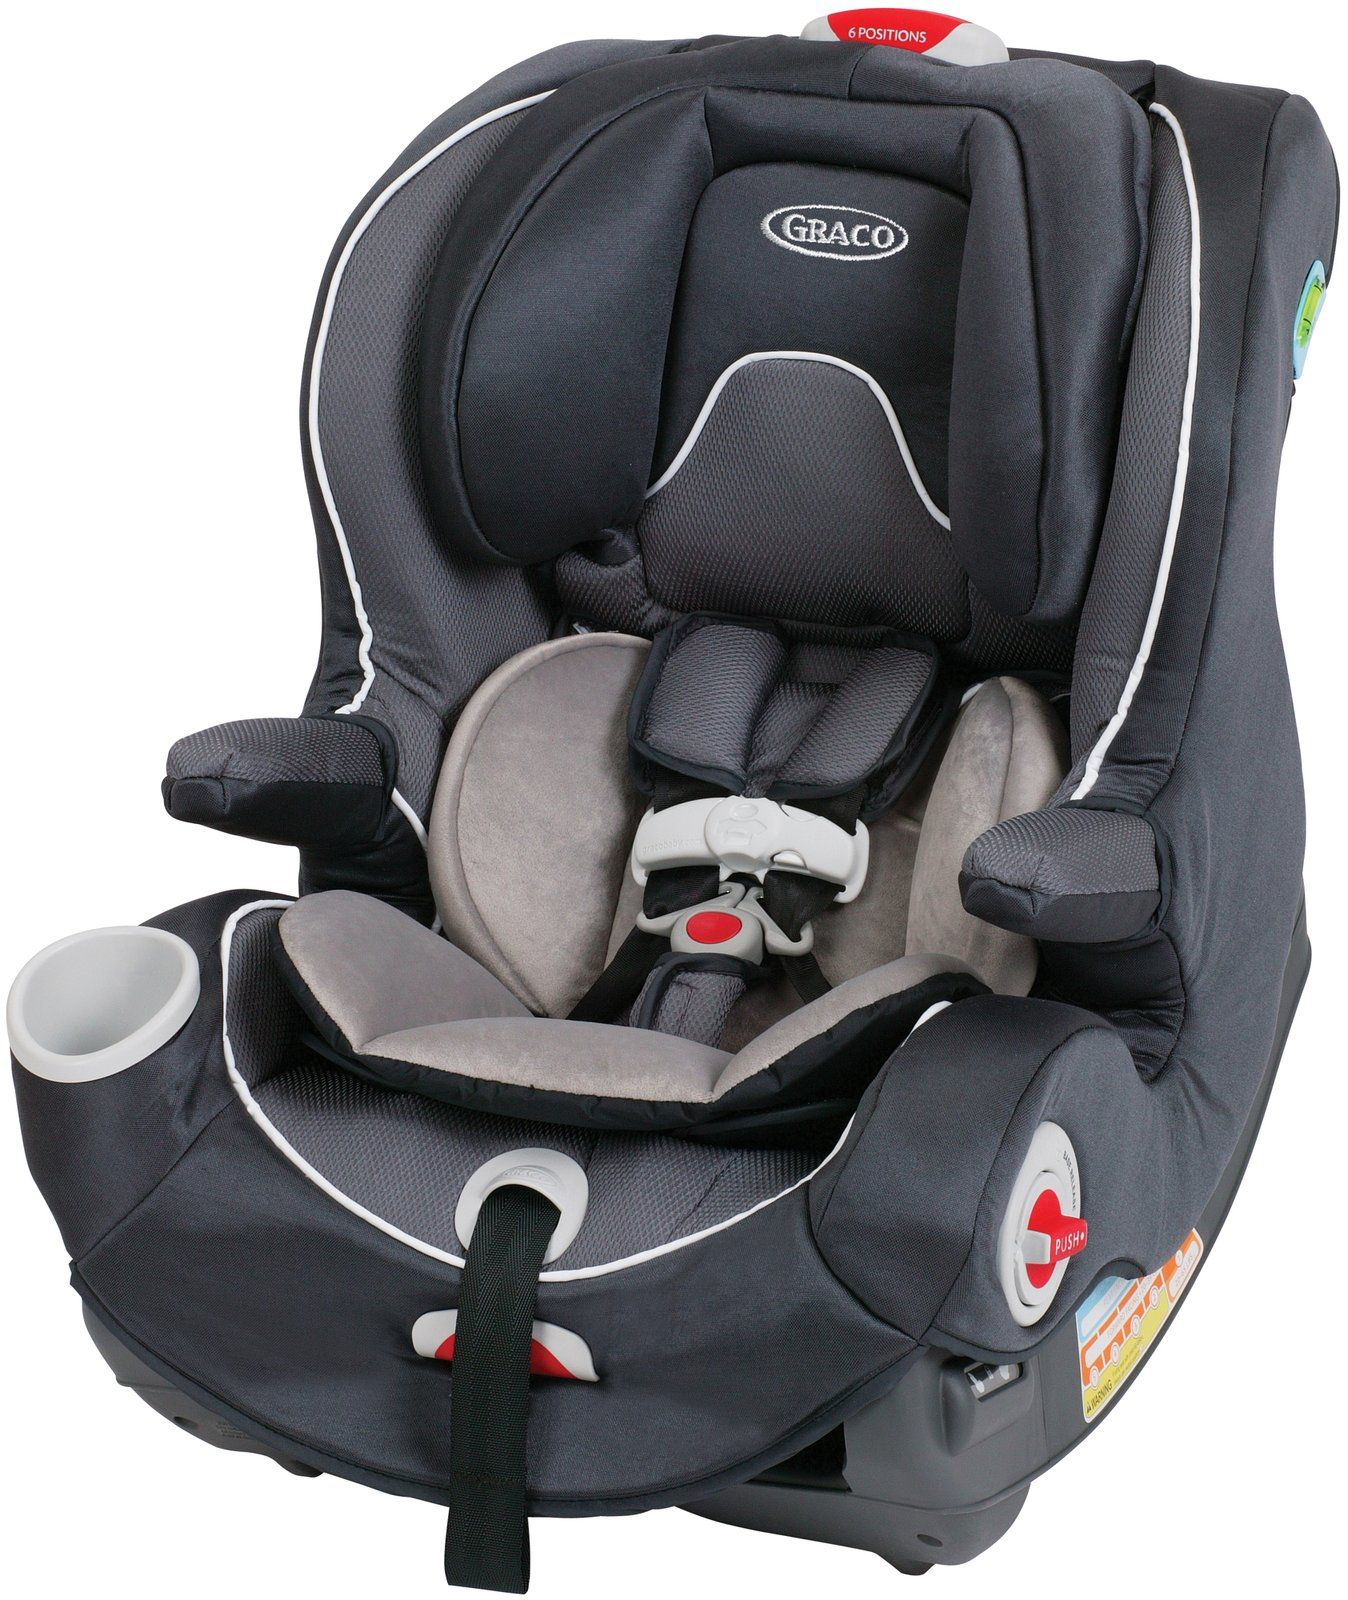 Graco Smart Seat All In One Car The Perfect Post Pumpkin Raise And Lower Straps Are Extremely Convenient Also You Will Not Need To Buy